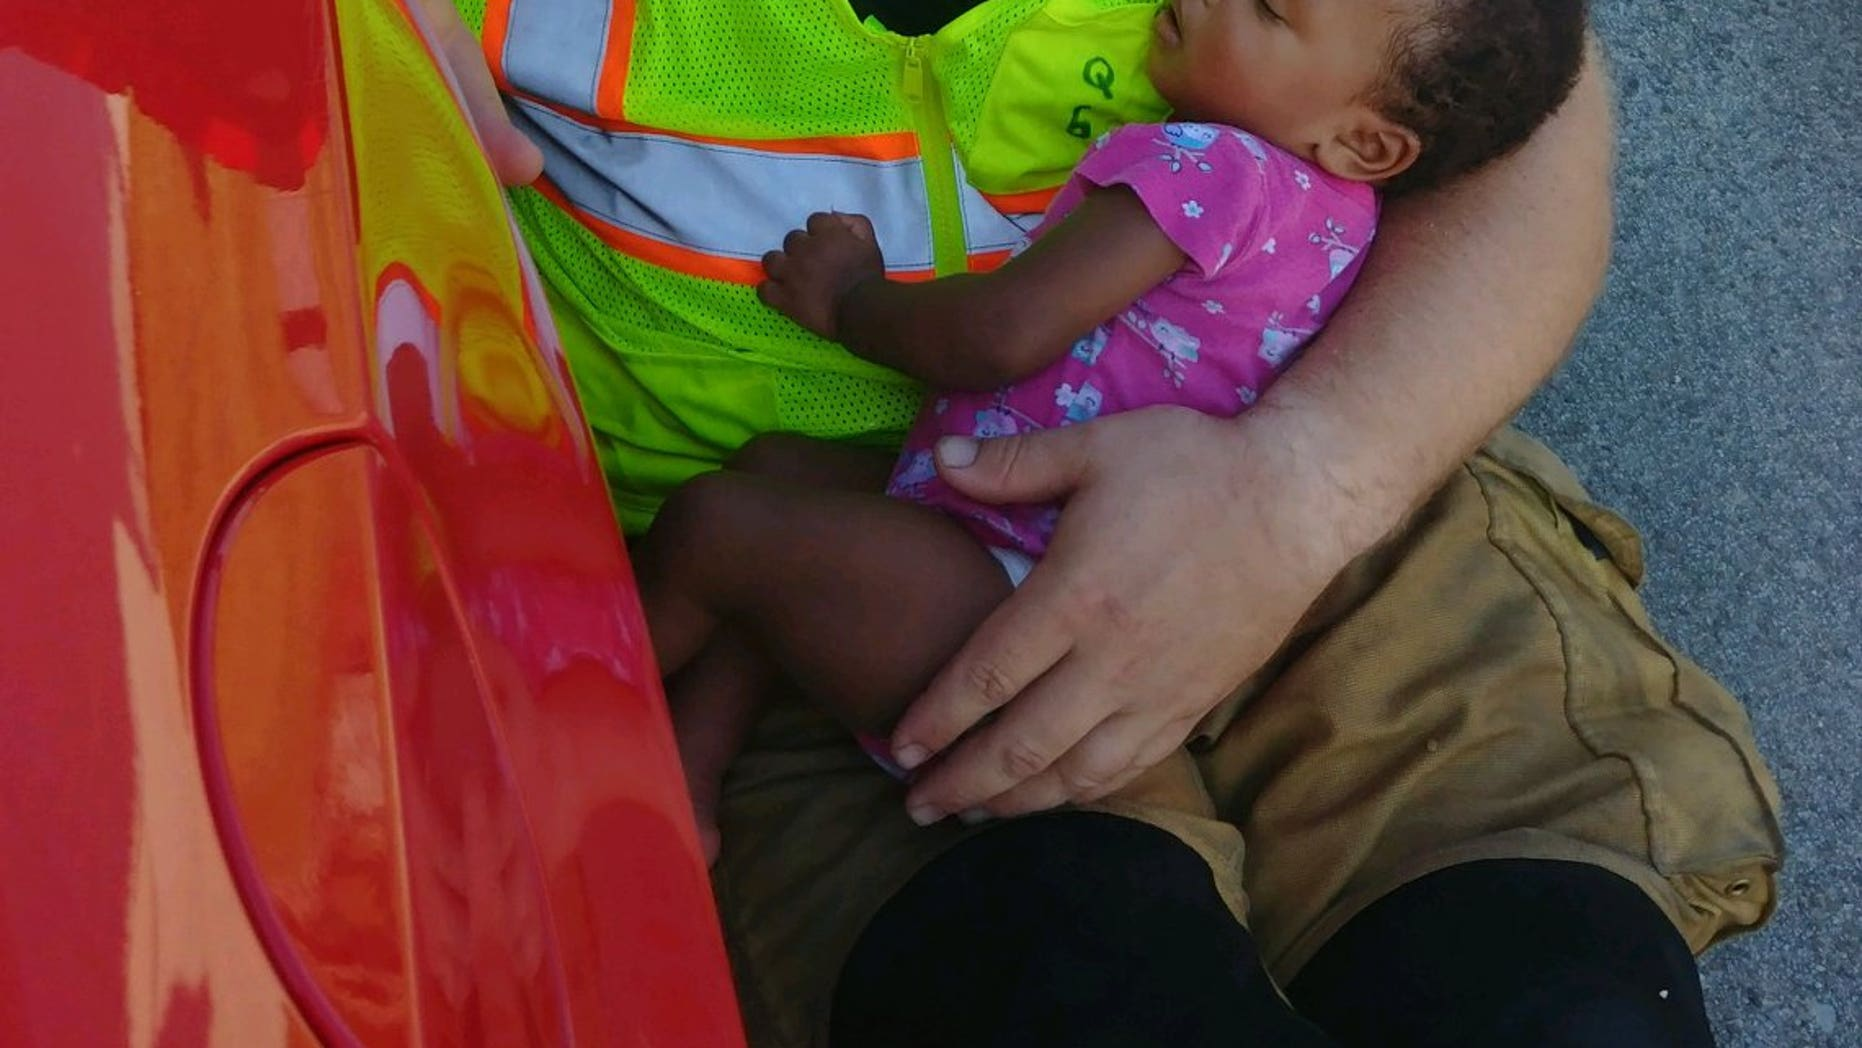 A photo of Capt. Chris Blazek, of the Chattanooga Fire Department, cradling a baby after she was in a car accident on State Route 58 has gone viral since the department posted it to Facebook Monday.